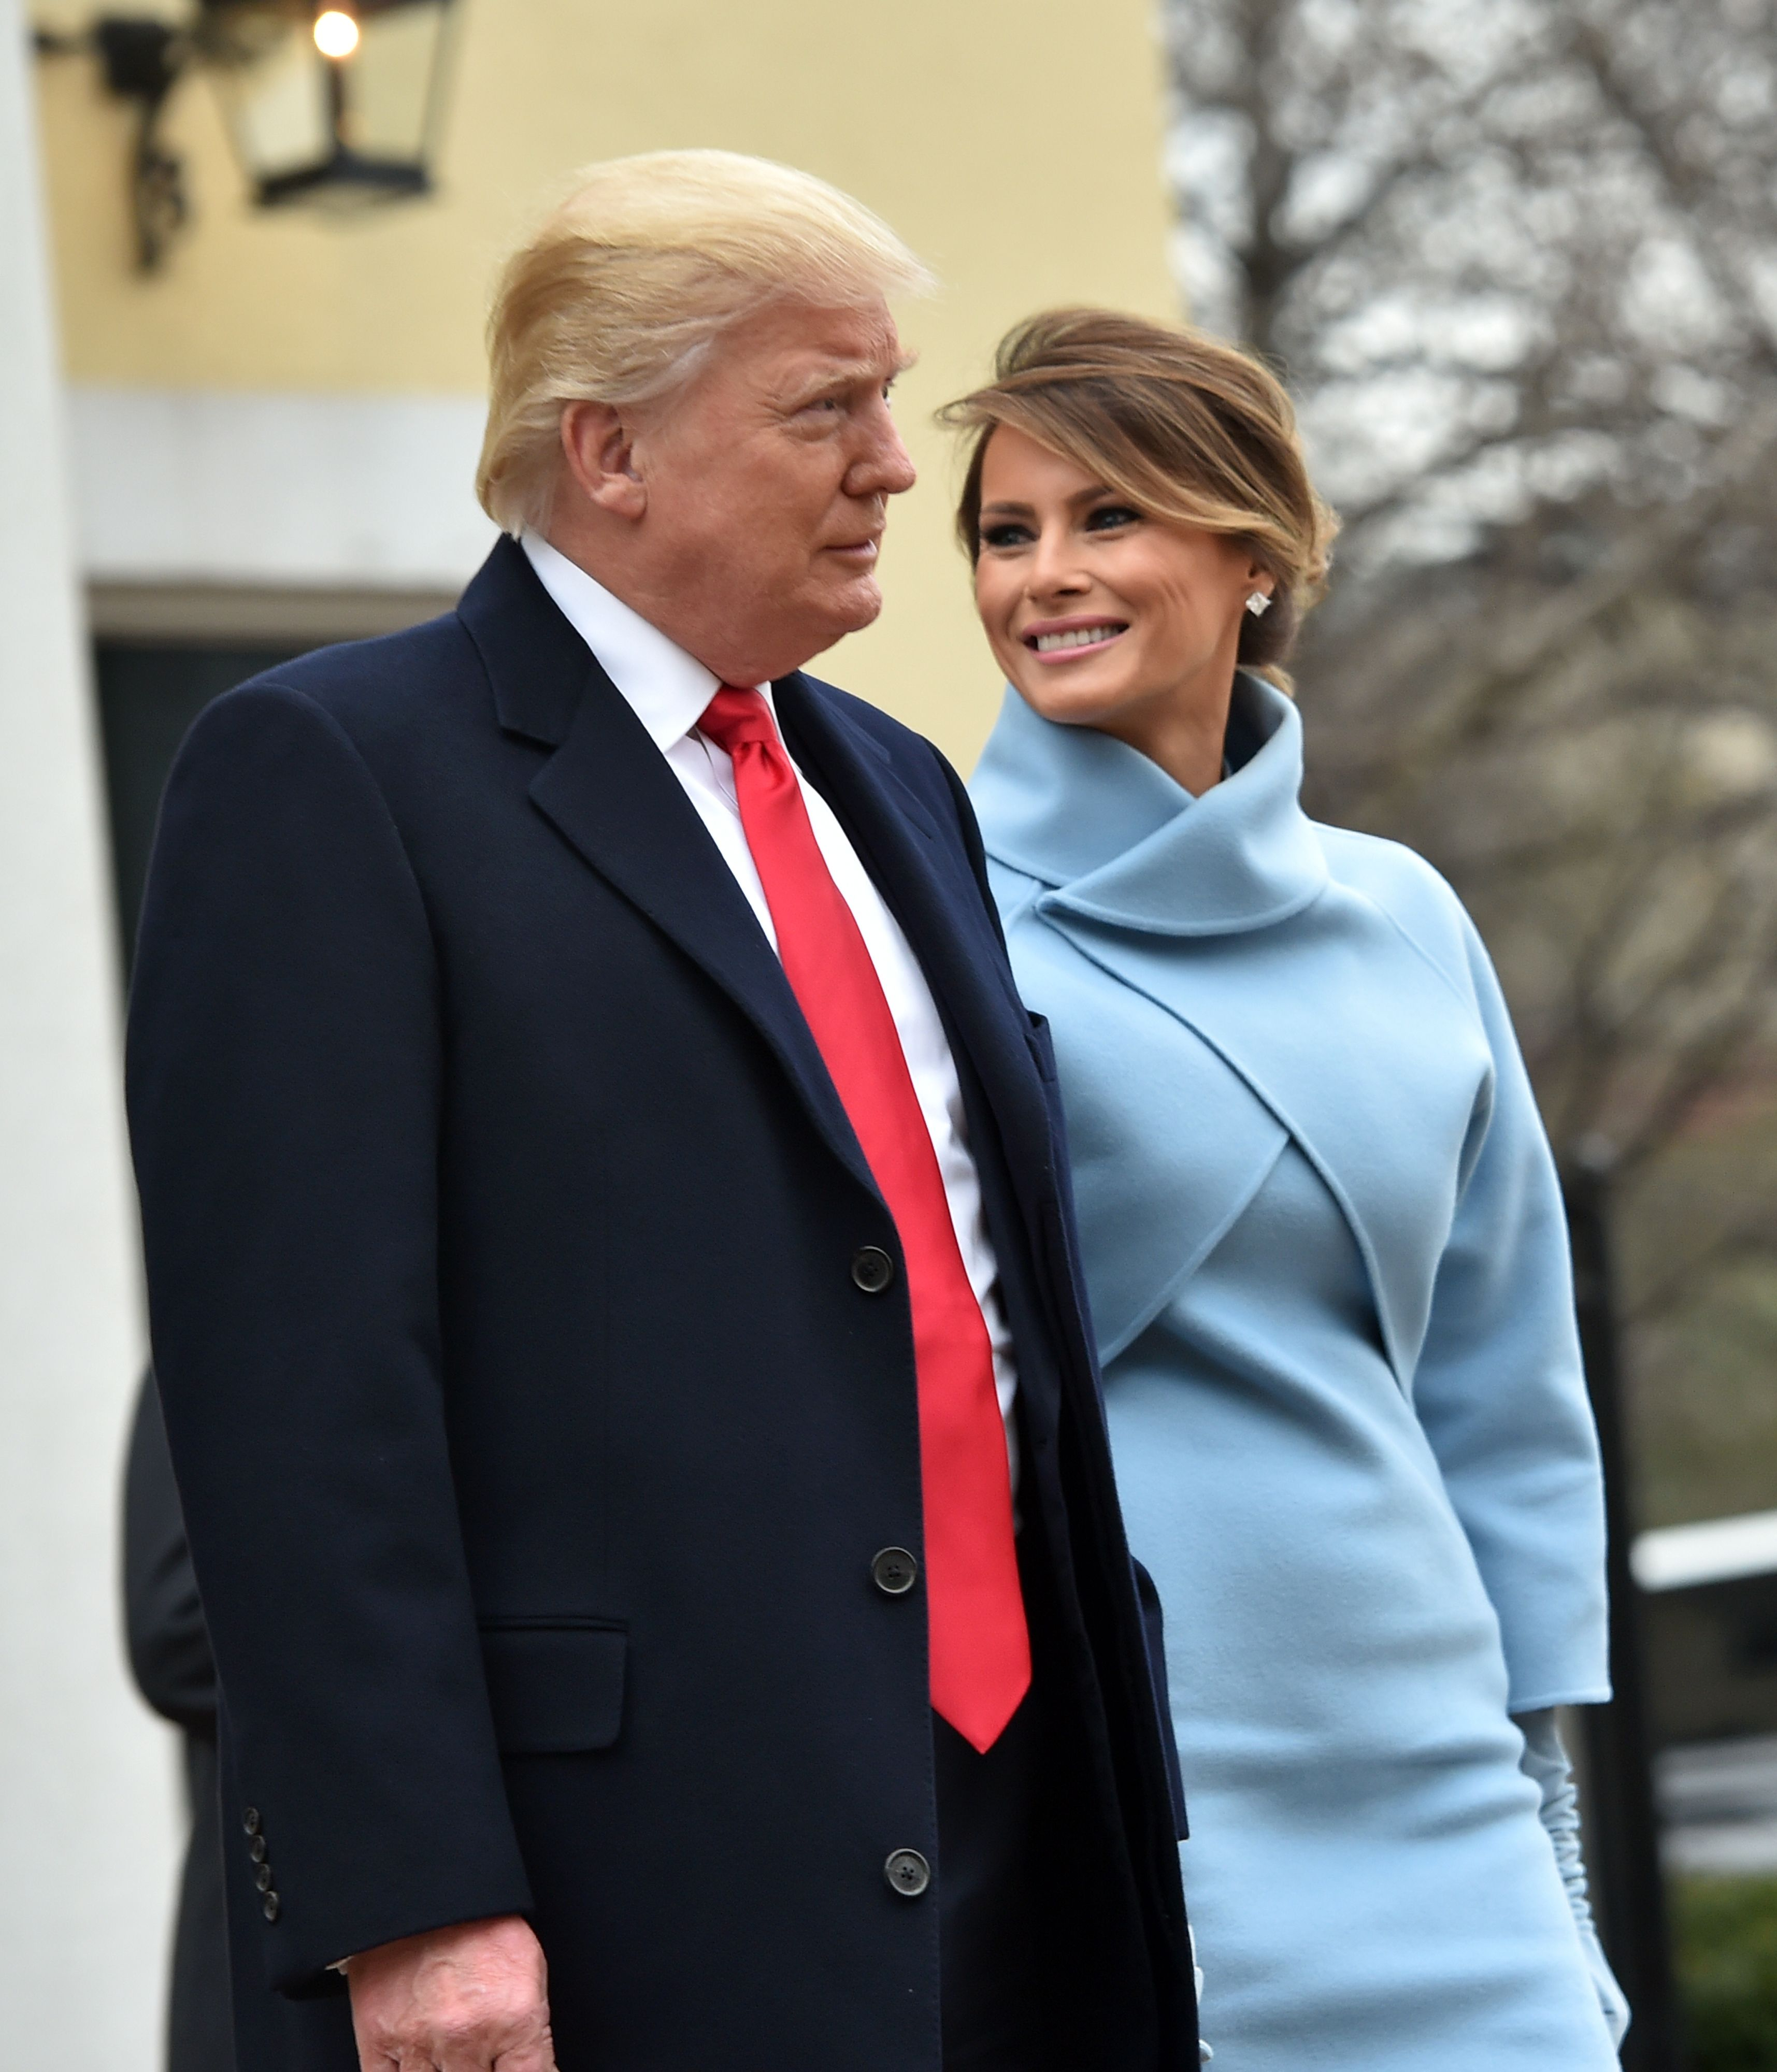 President-elect Donald Trump and Melania Trump inauguration